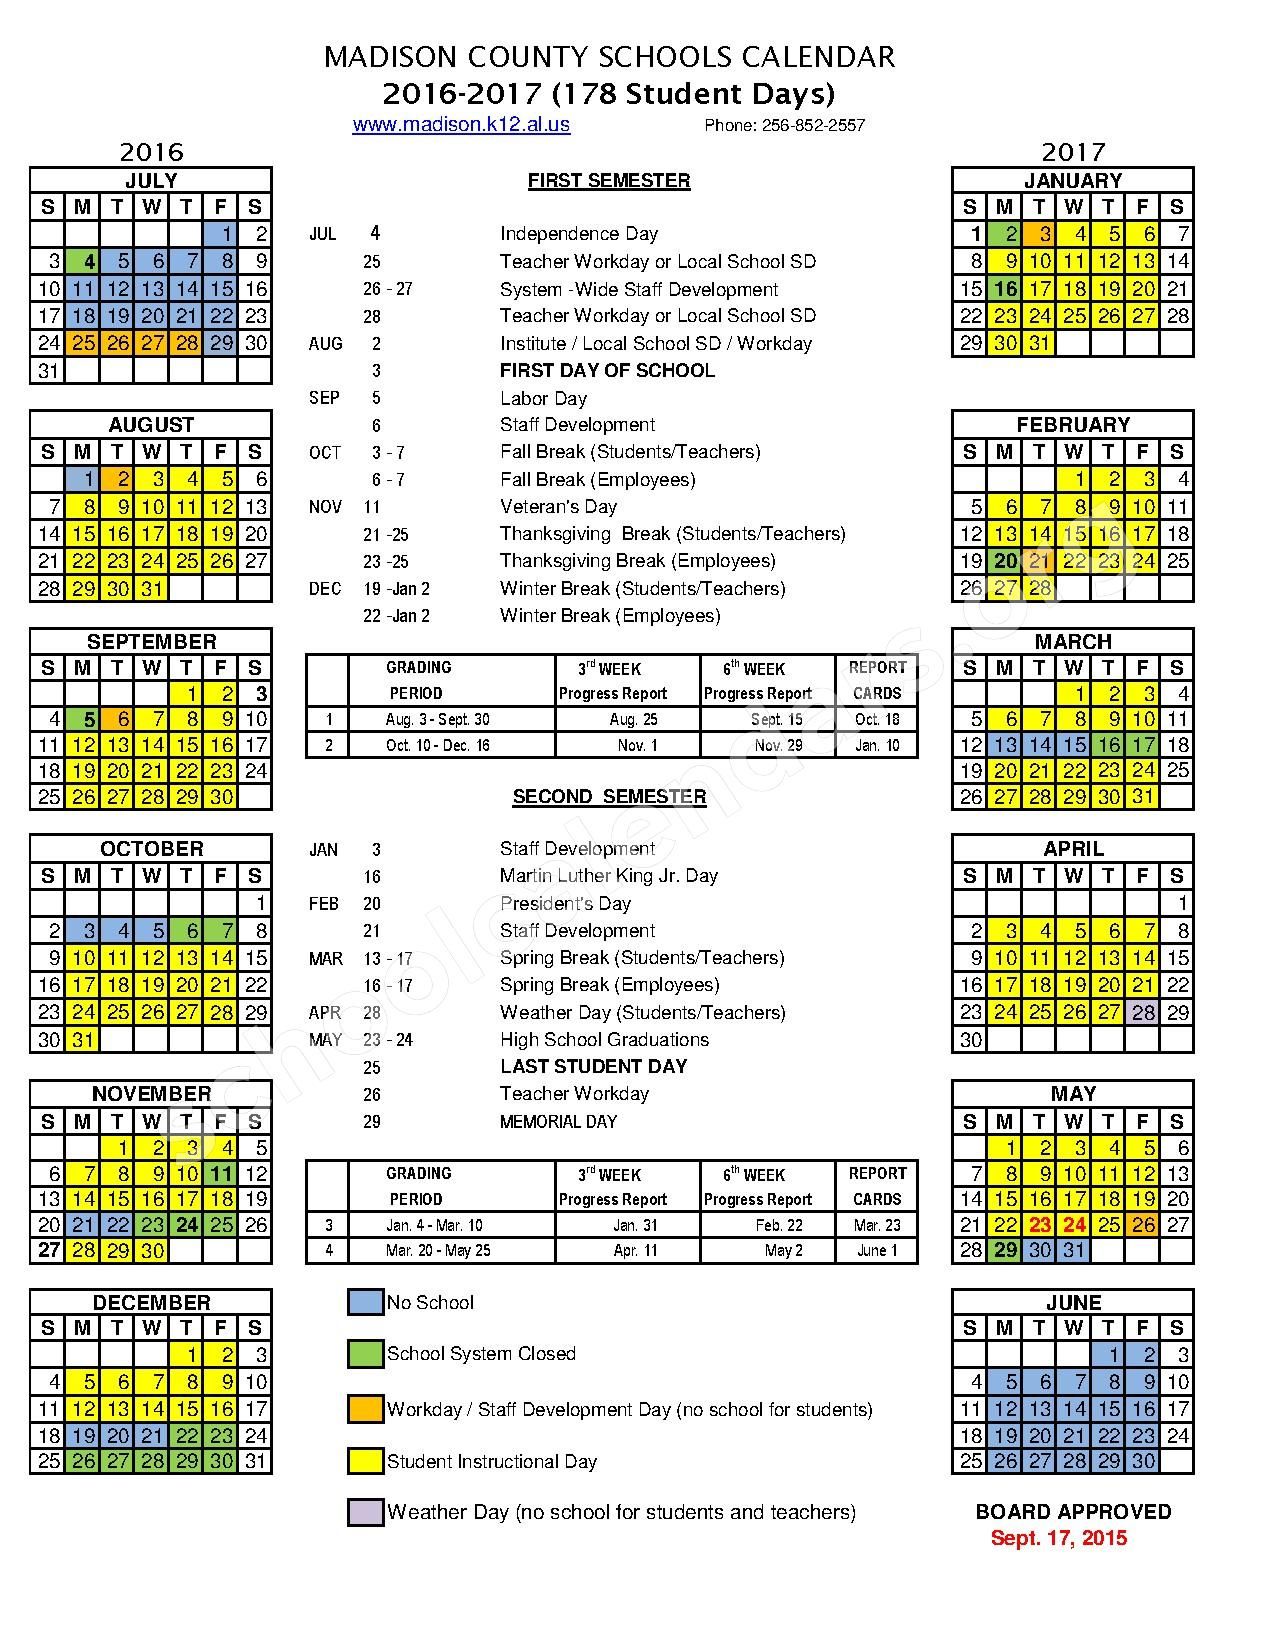 2016 – 2017 School Calendar | Madison County Schools Within Madison County Schools School Year Calendar